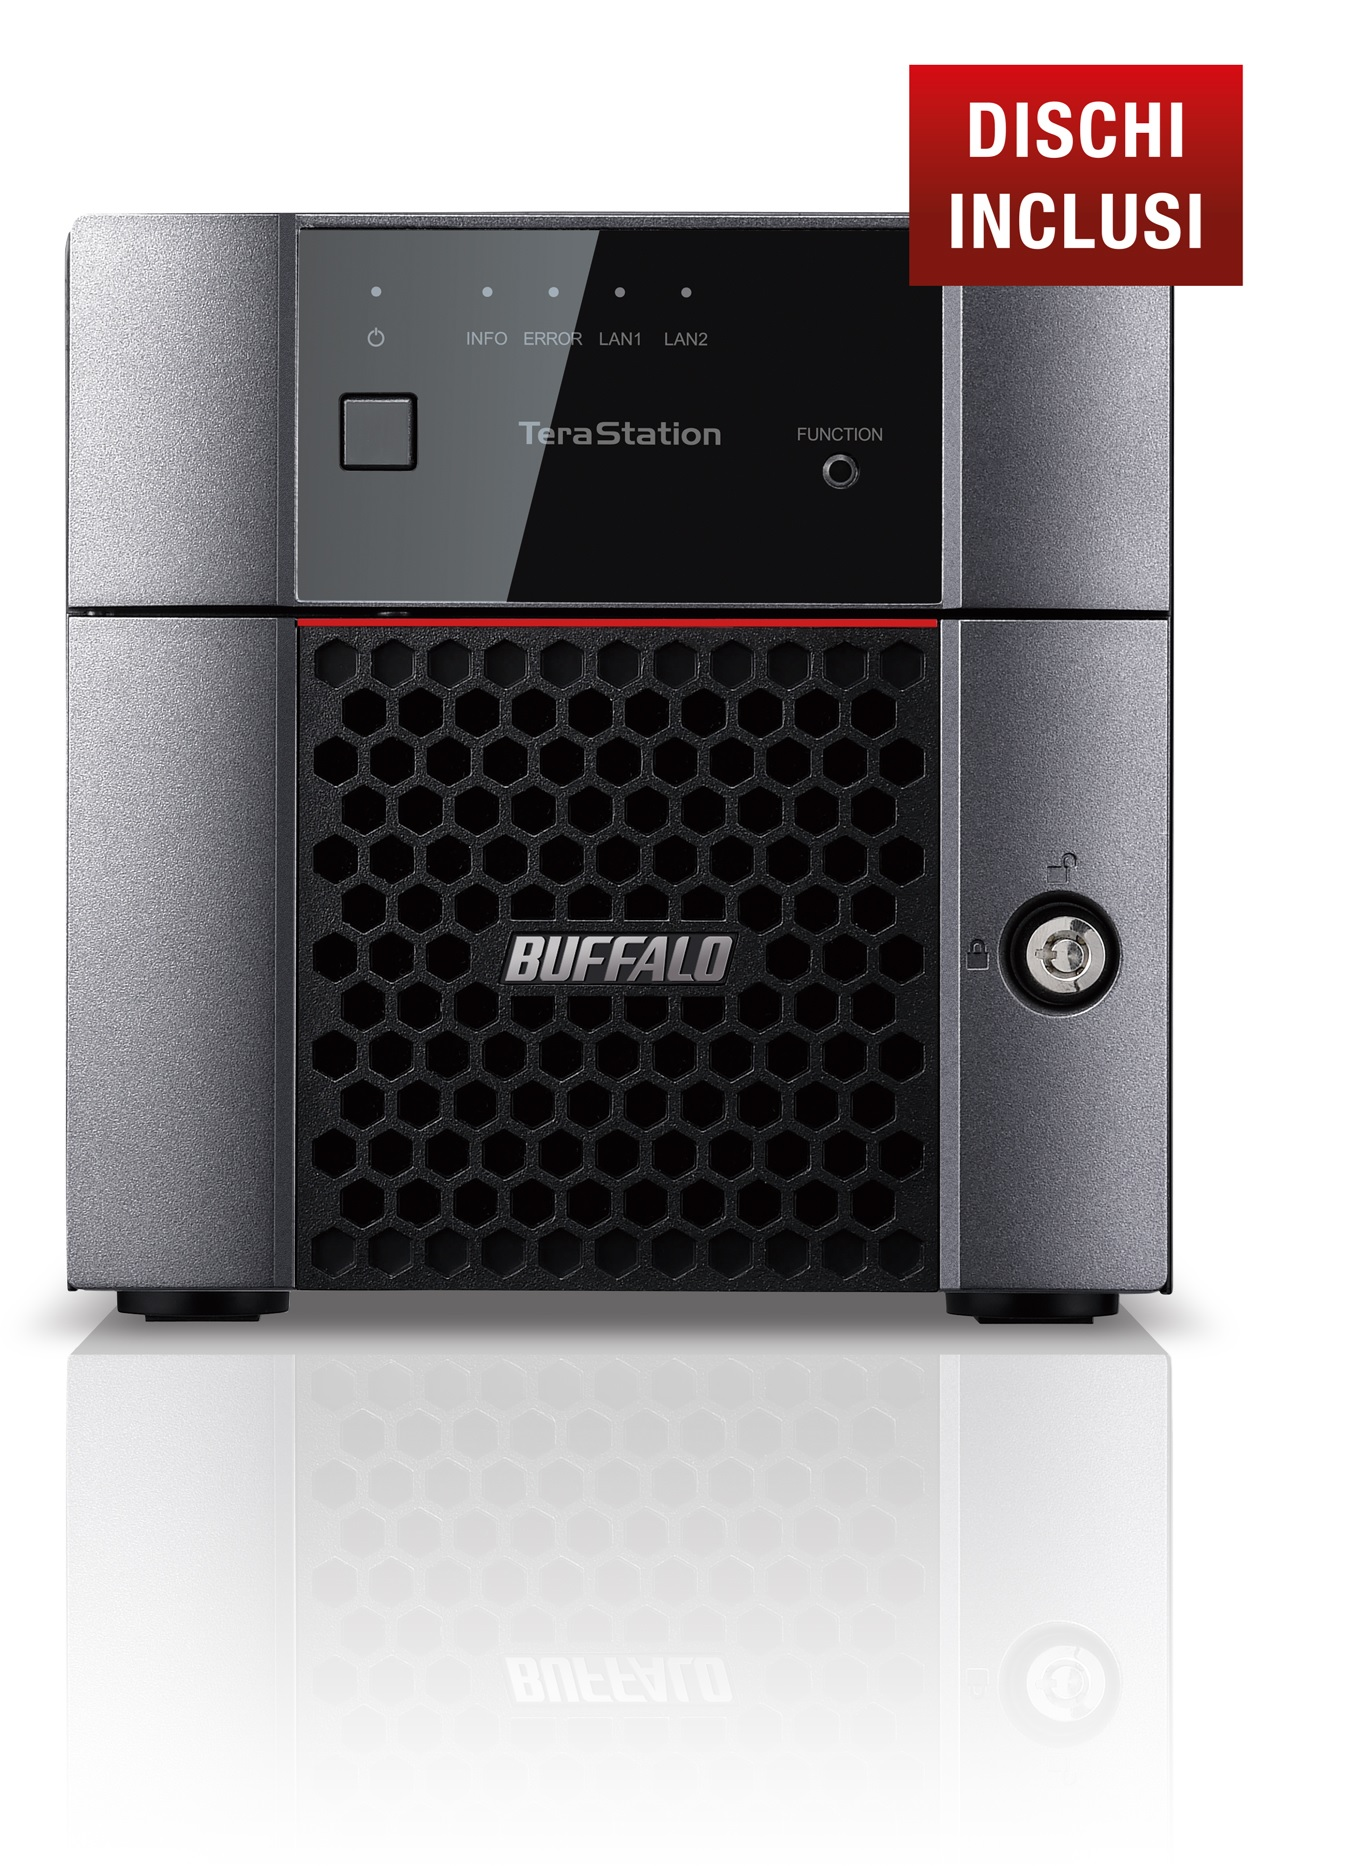 BUFFALO NAS TERASTATION 3210 DESKTOP 2X1TB HDD SATA GIGABIT ETHERNET 3 ANNI GARANZIA ADVANCED REPLACEMENT DEI DISCHI